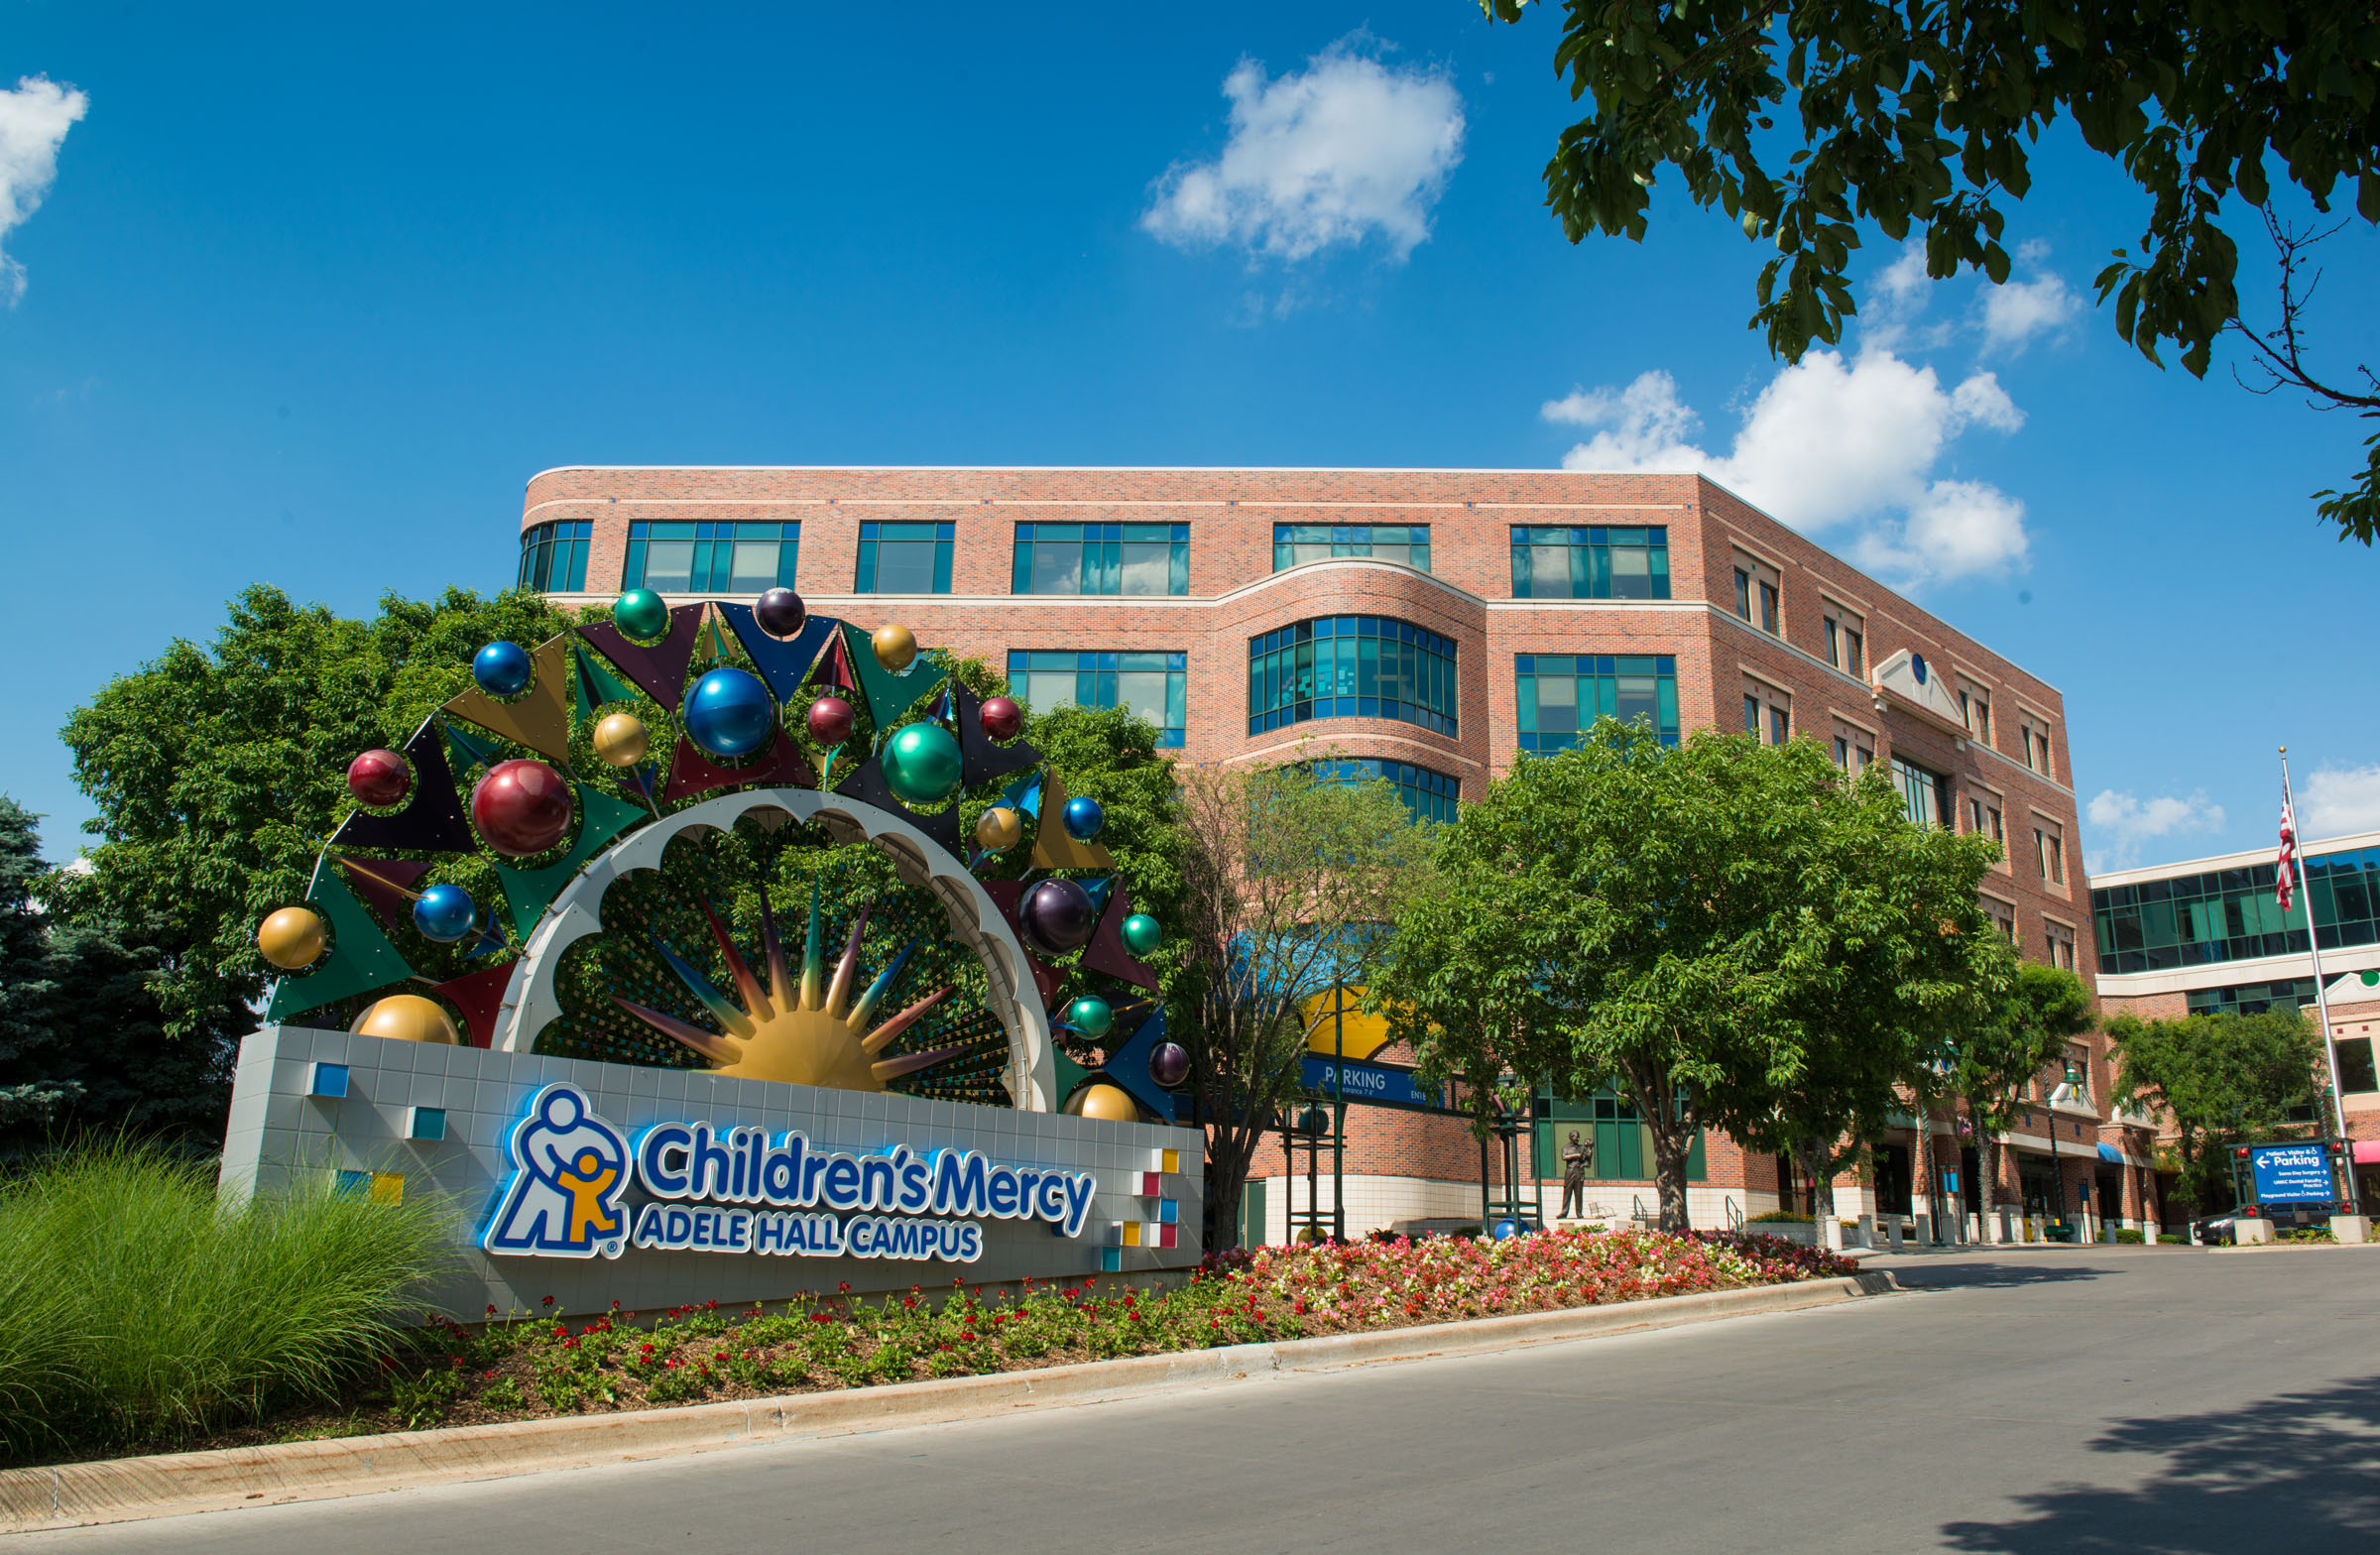 photo of Children's Mercy Adele Hall campus